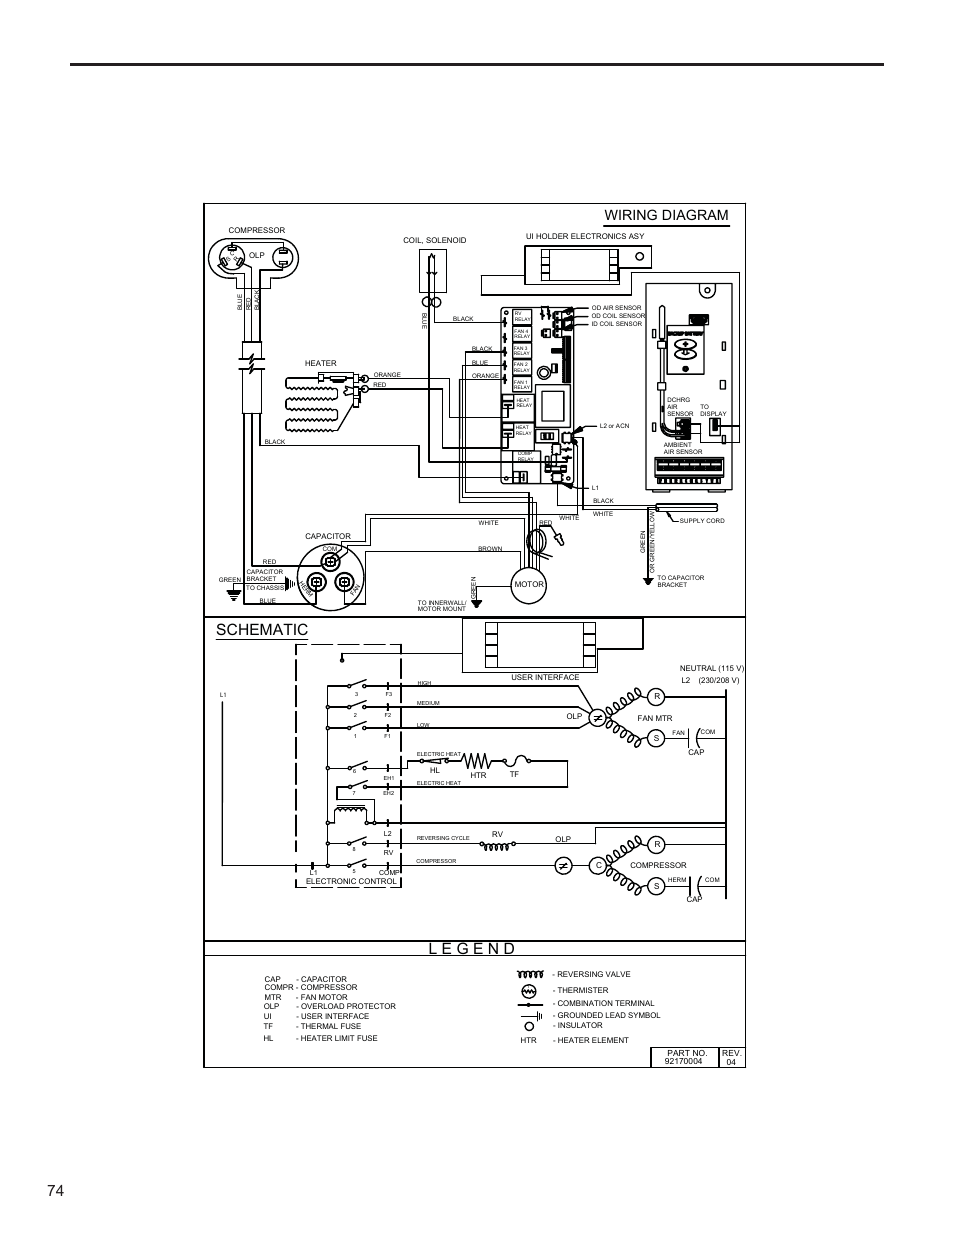 Schematic Wiring Diagram Friedrich Kuhl R 410a User Manual Page